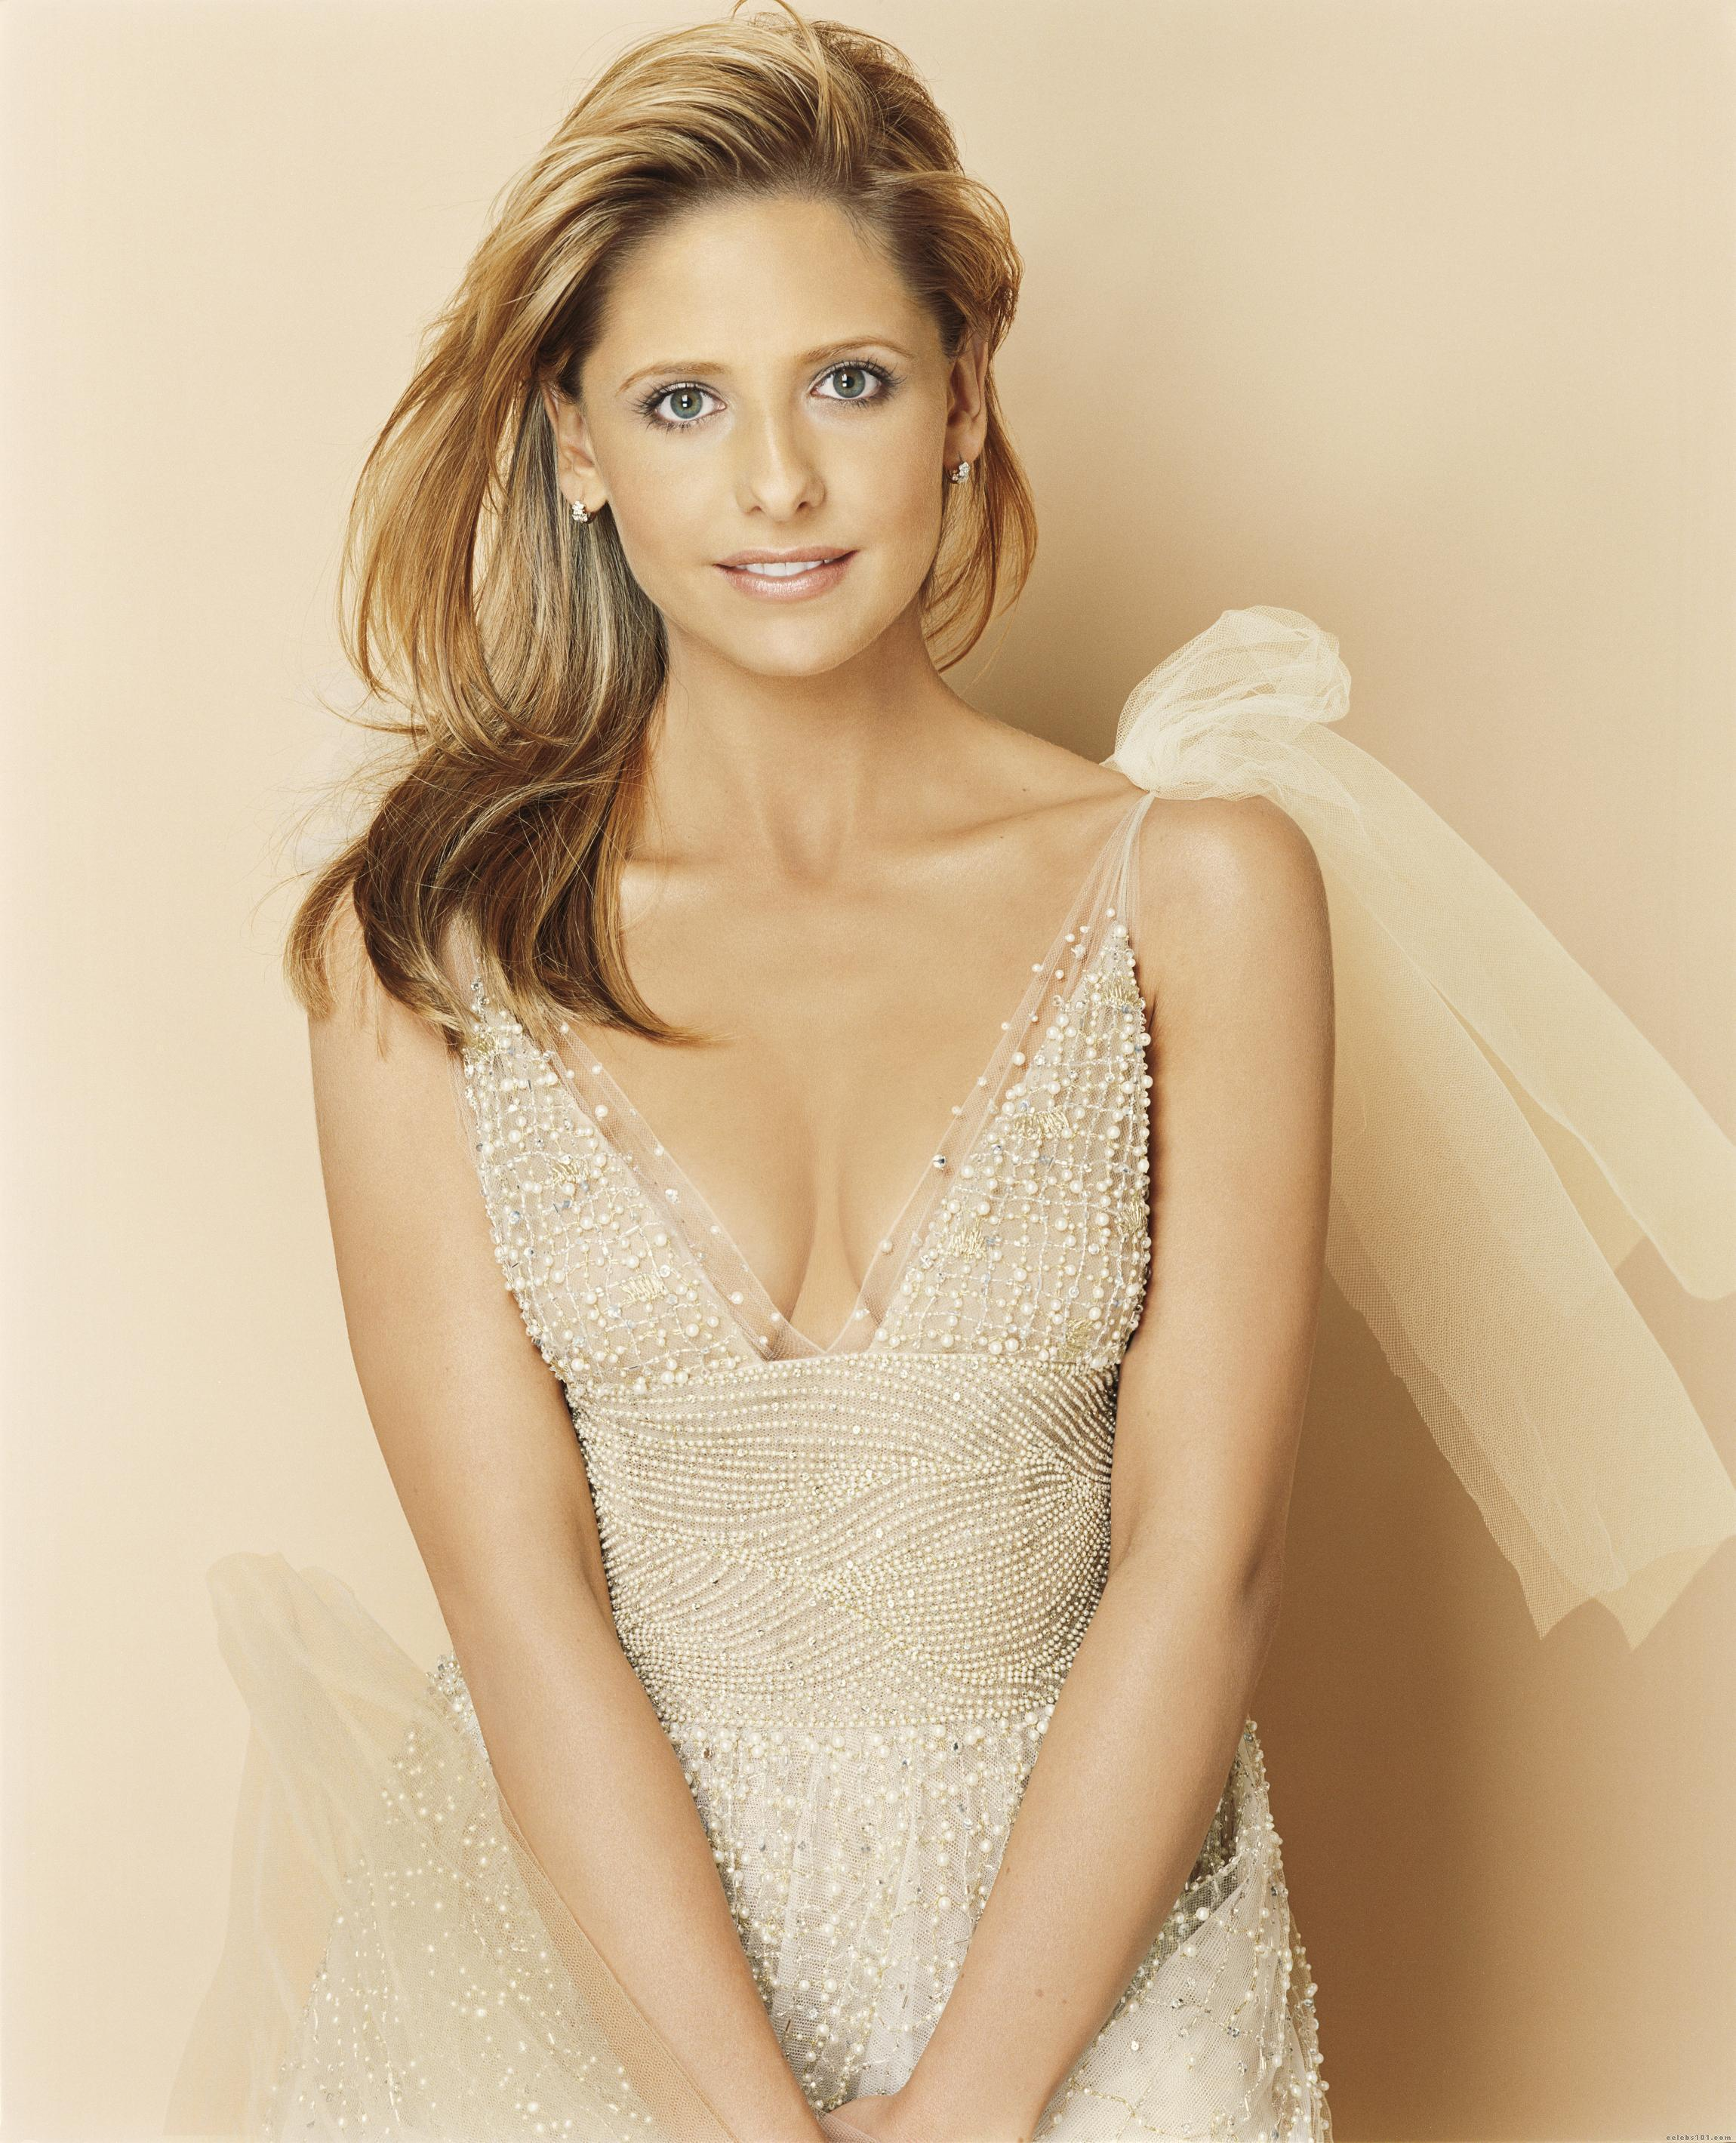 Sarah michelle gellar nude fakes photo 100